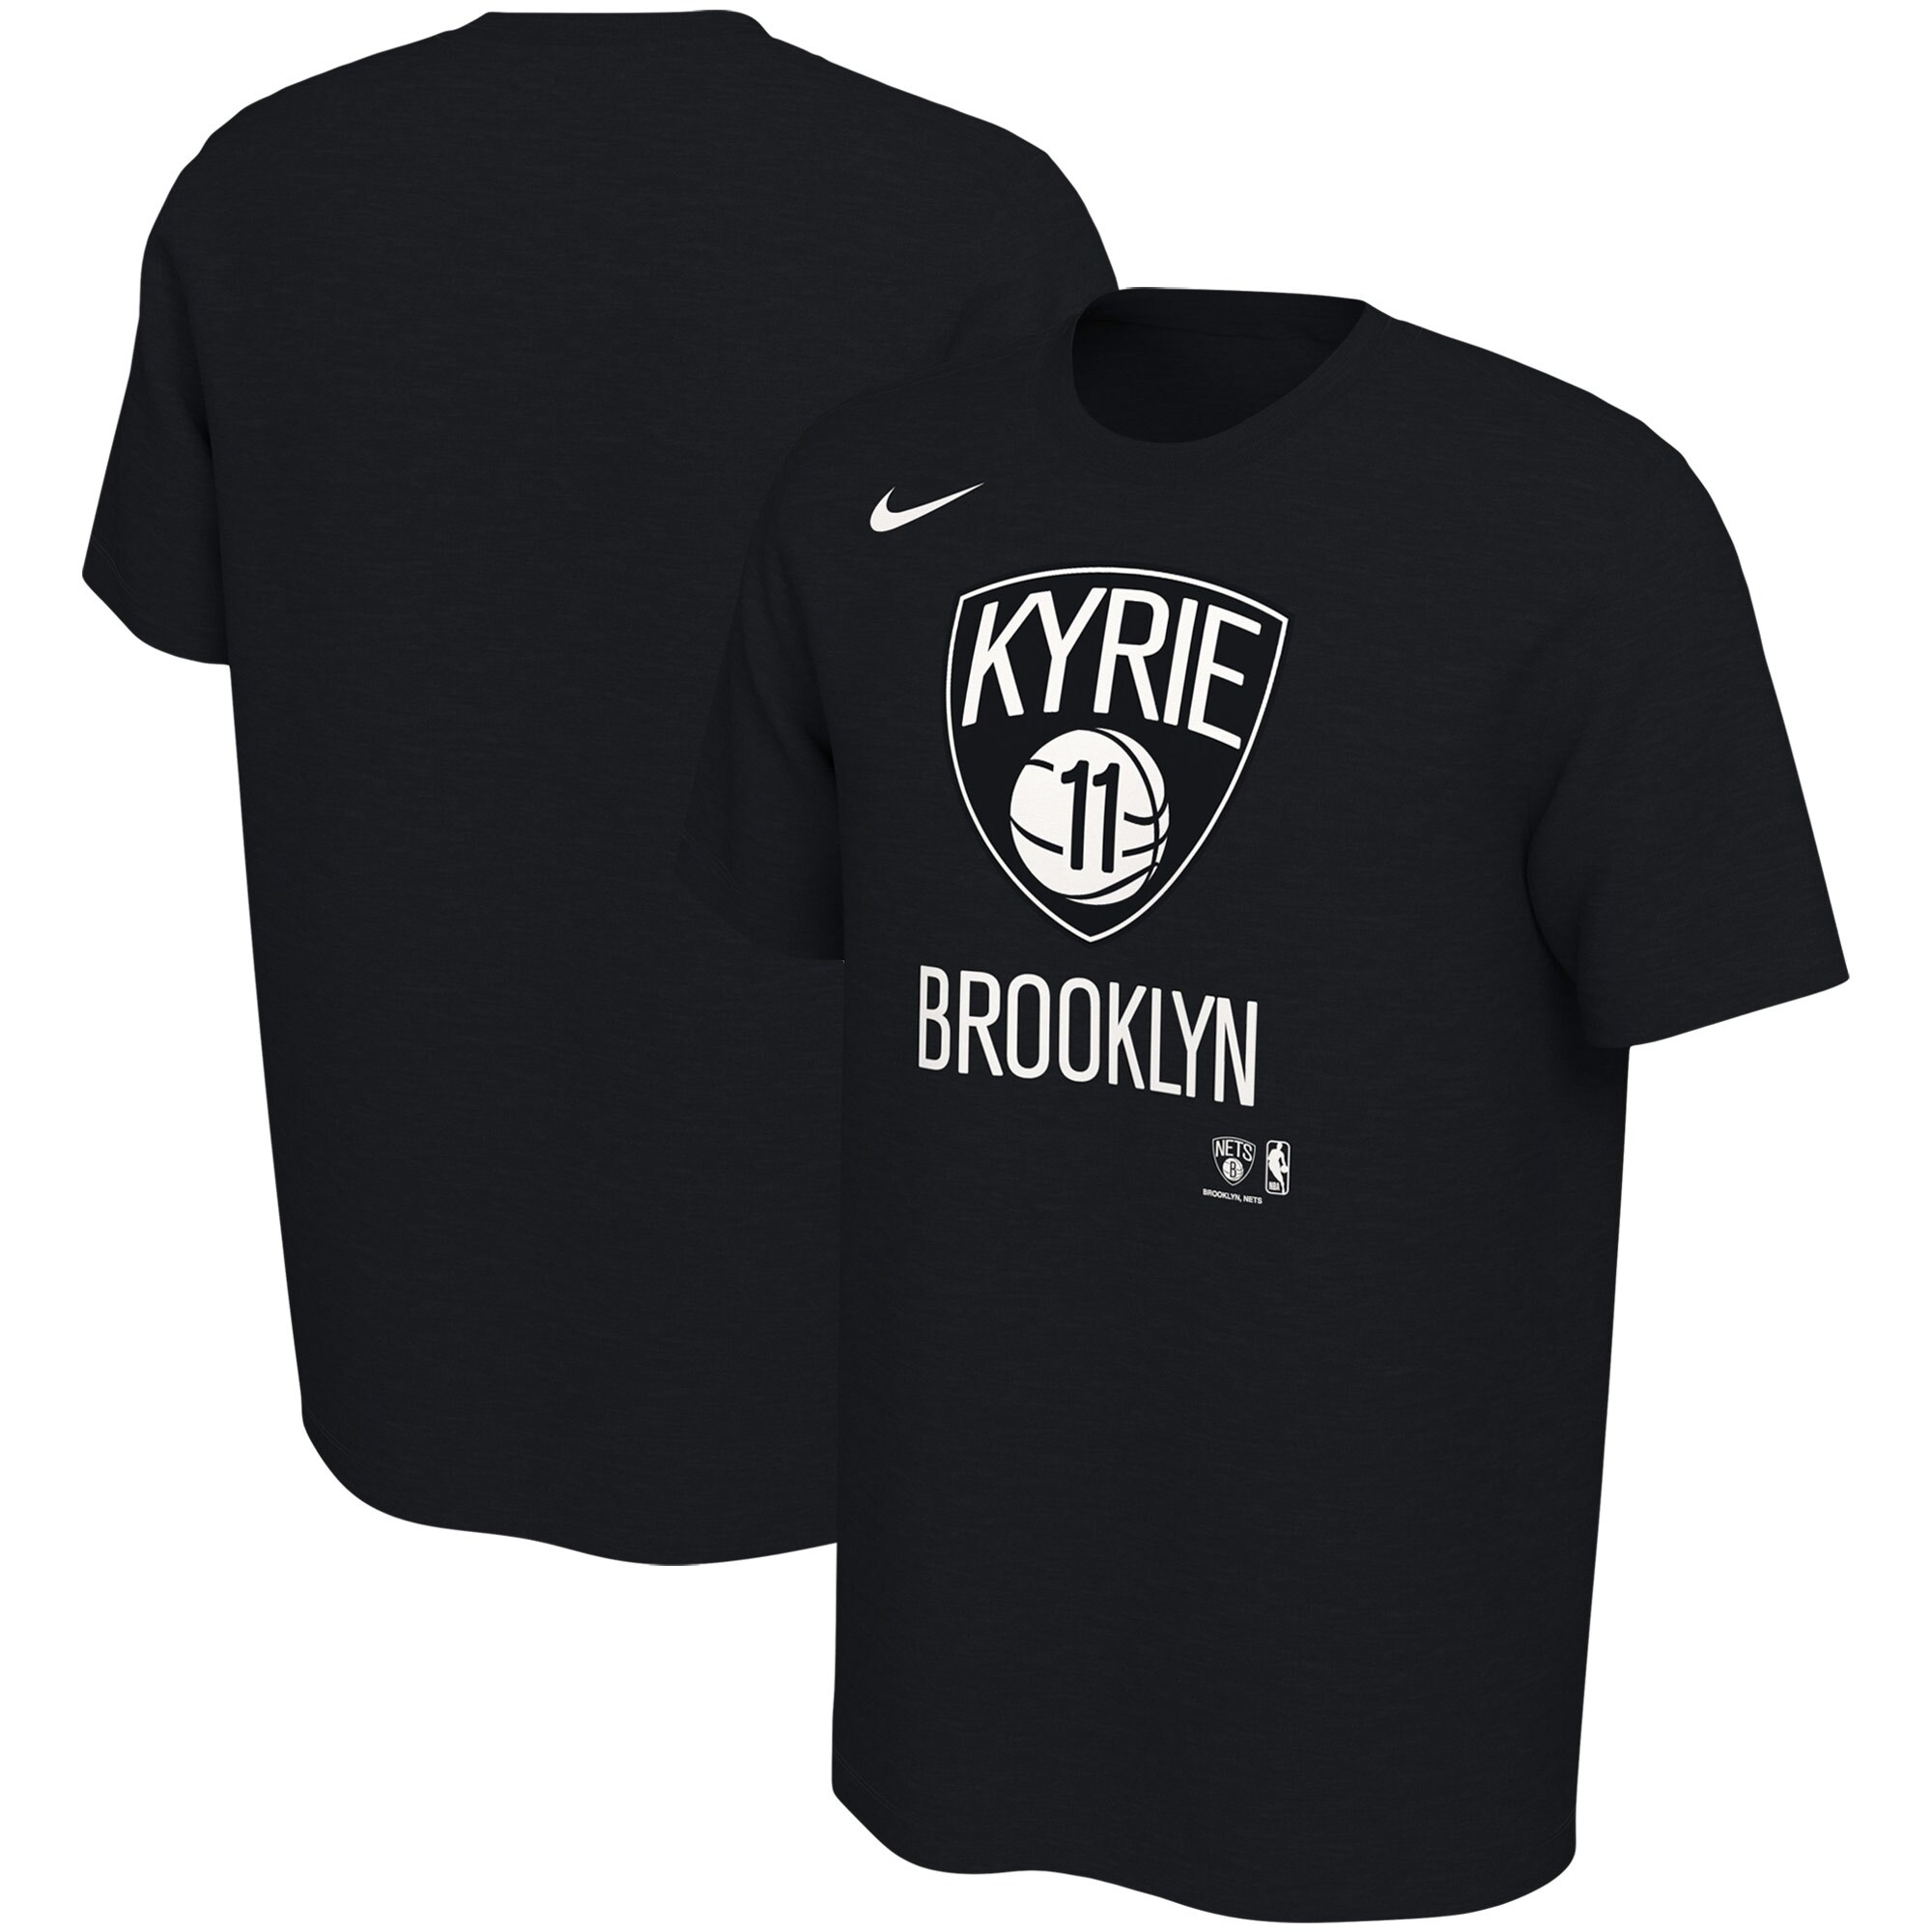 Kyrie Irving Brooklyn Nets Nike New City Player Name & Number T-Shirt - Black